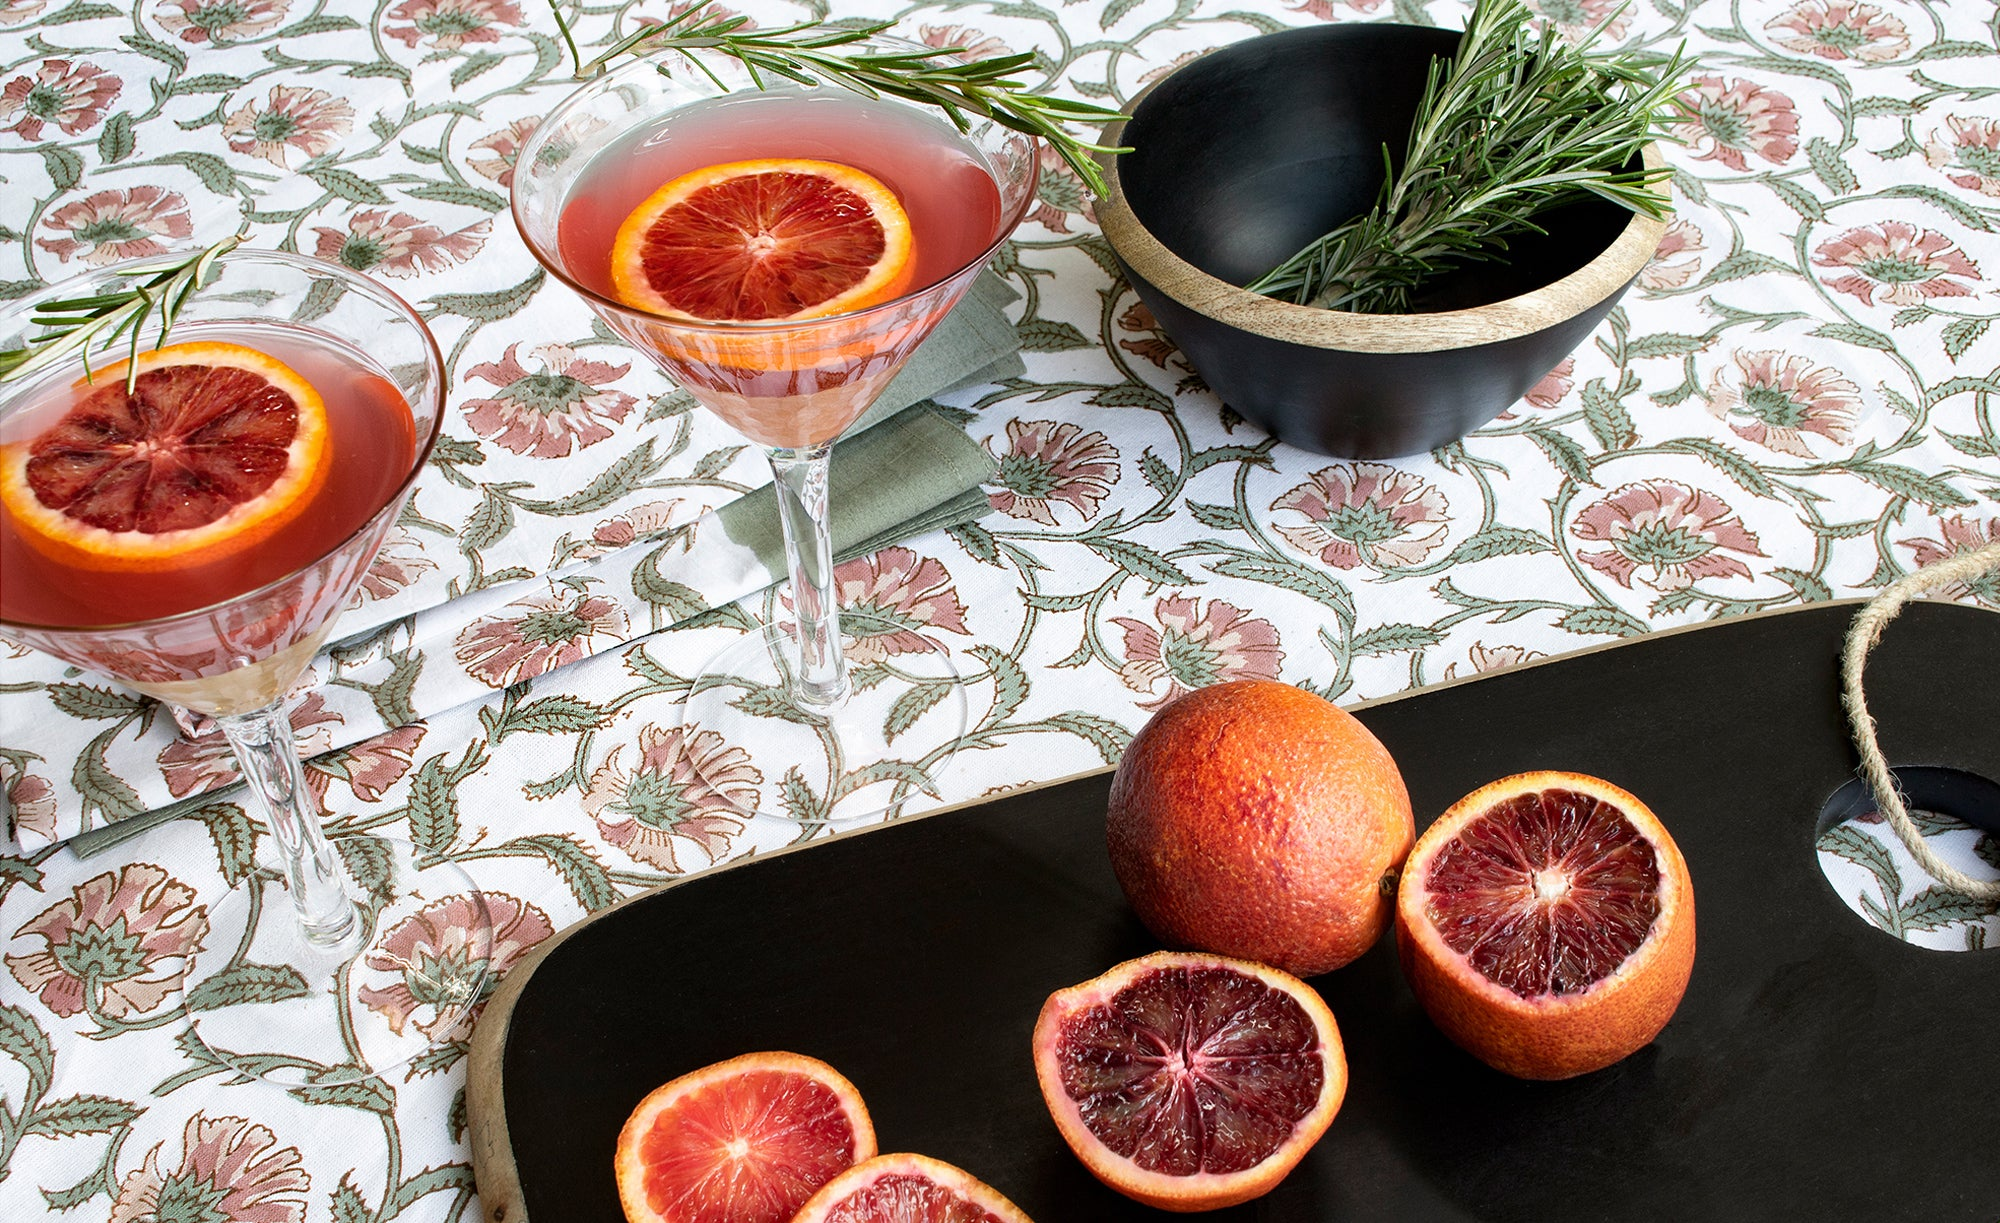 L&M Home Blood Orange and Rosemary Martini